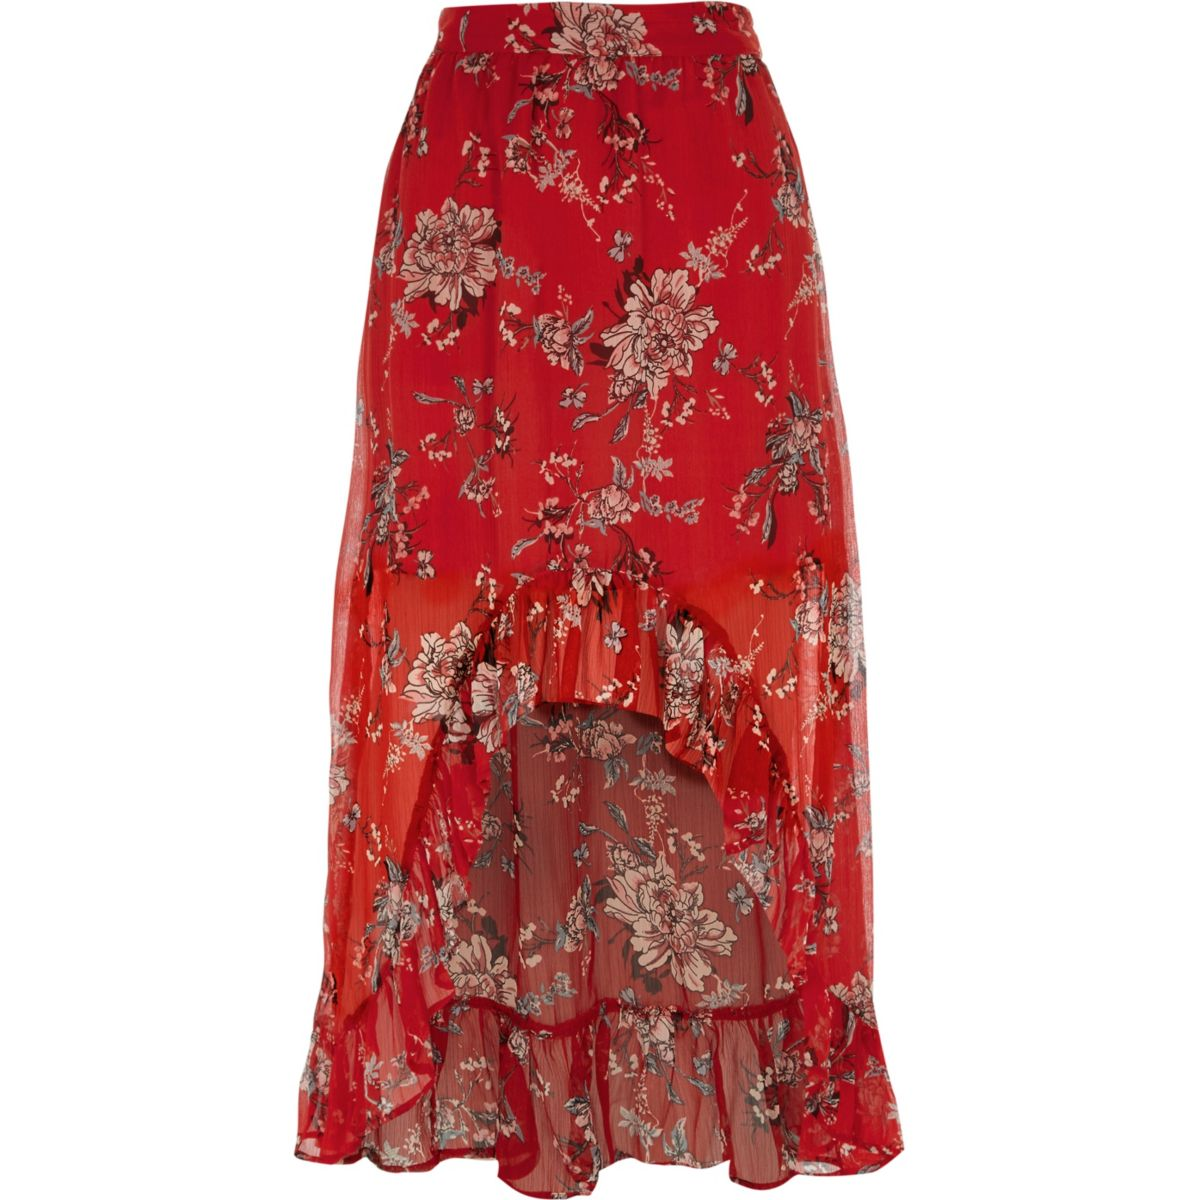 Red floral high-low maxi skirt